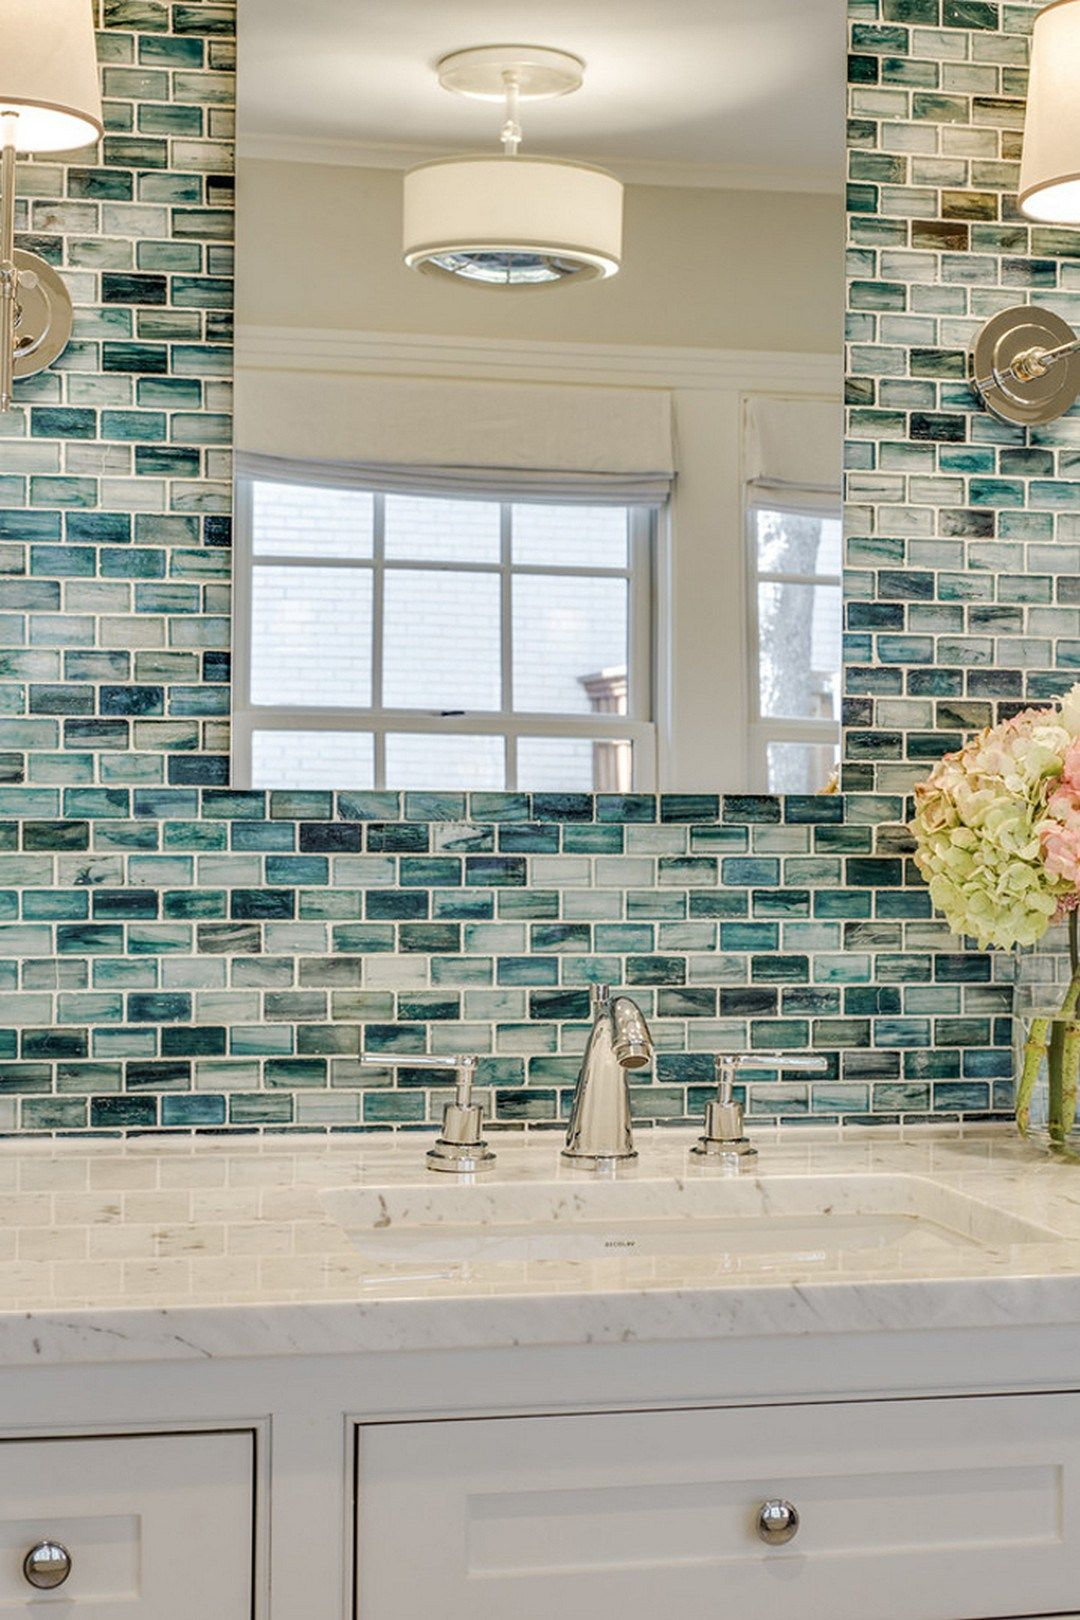 Here You Ll Be Able To Inspire Yourself Having The Best Ideas Thro Surfaces And Wall Coverings On Yo Bathroom Tile Designs Beach Theme Bathroom Remodel Bedroom